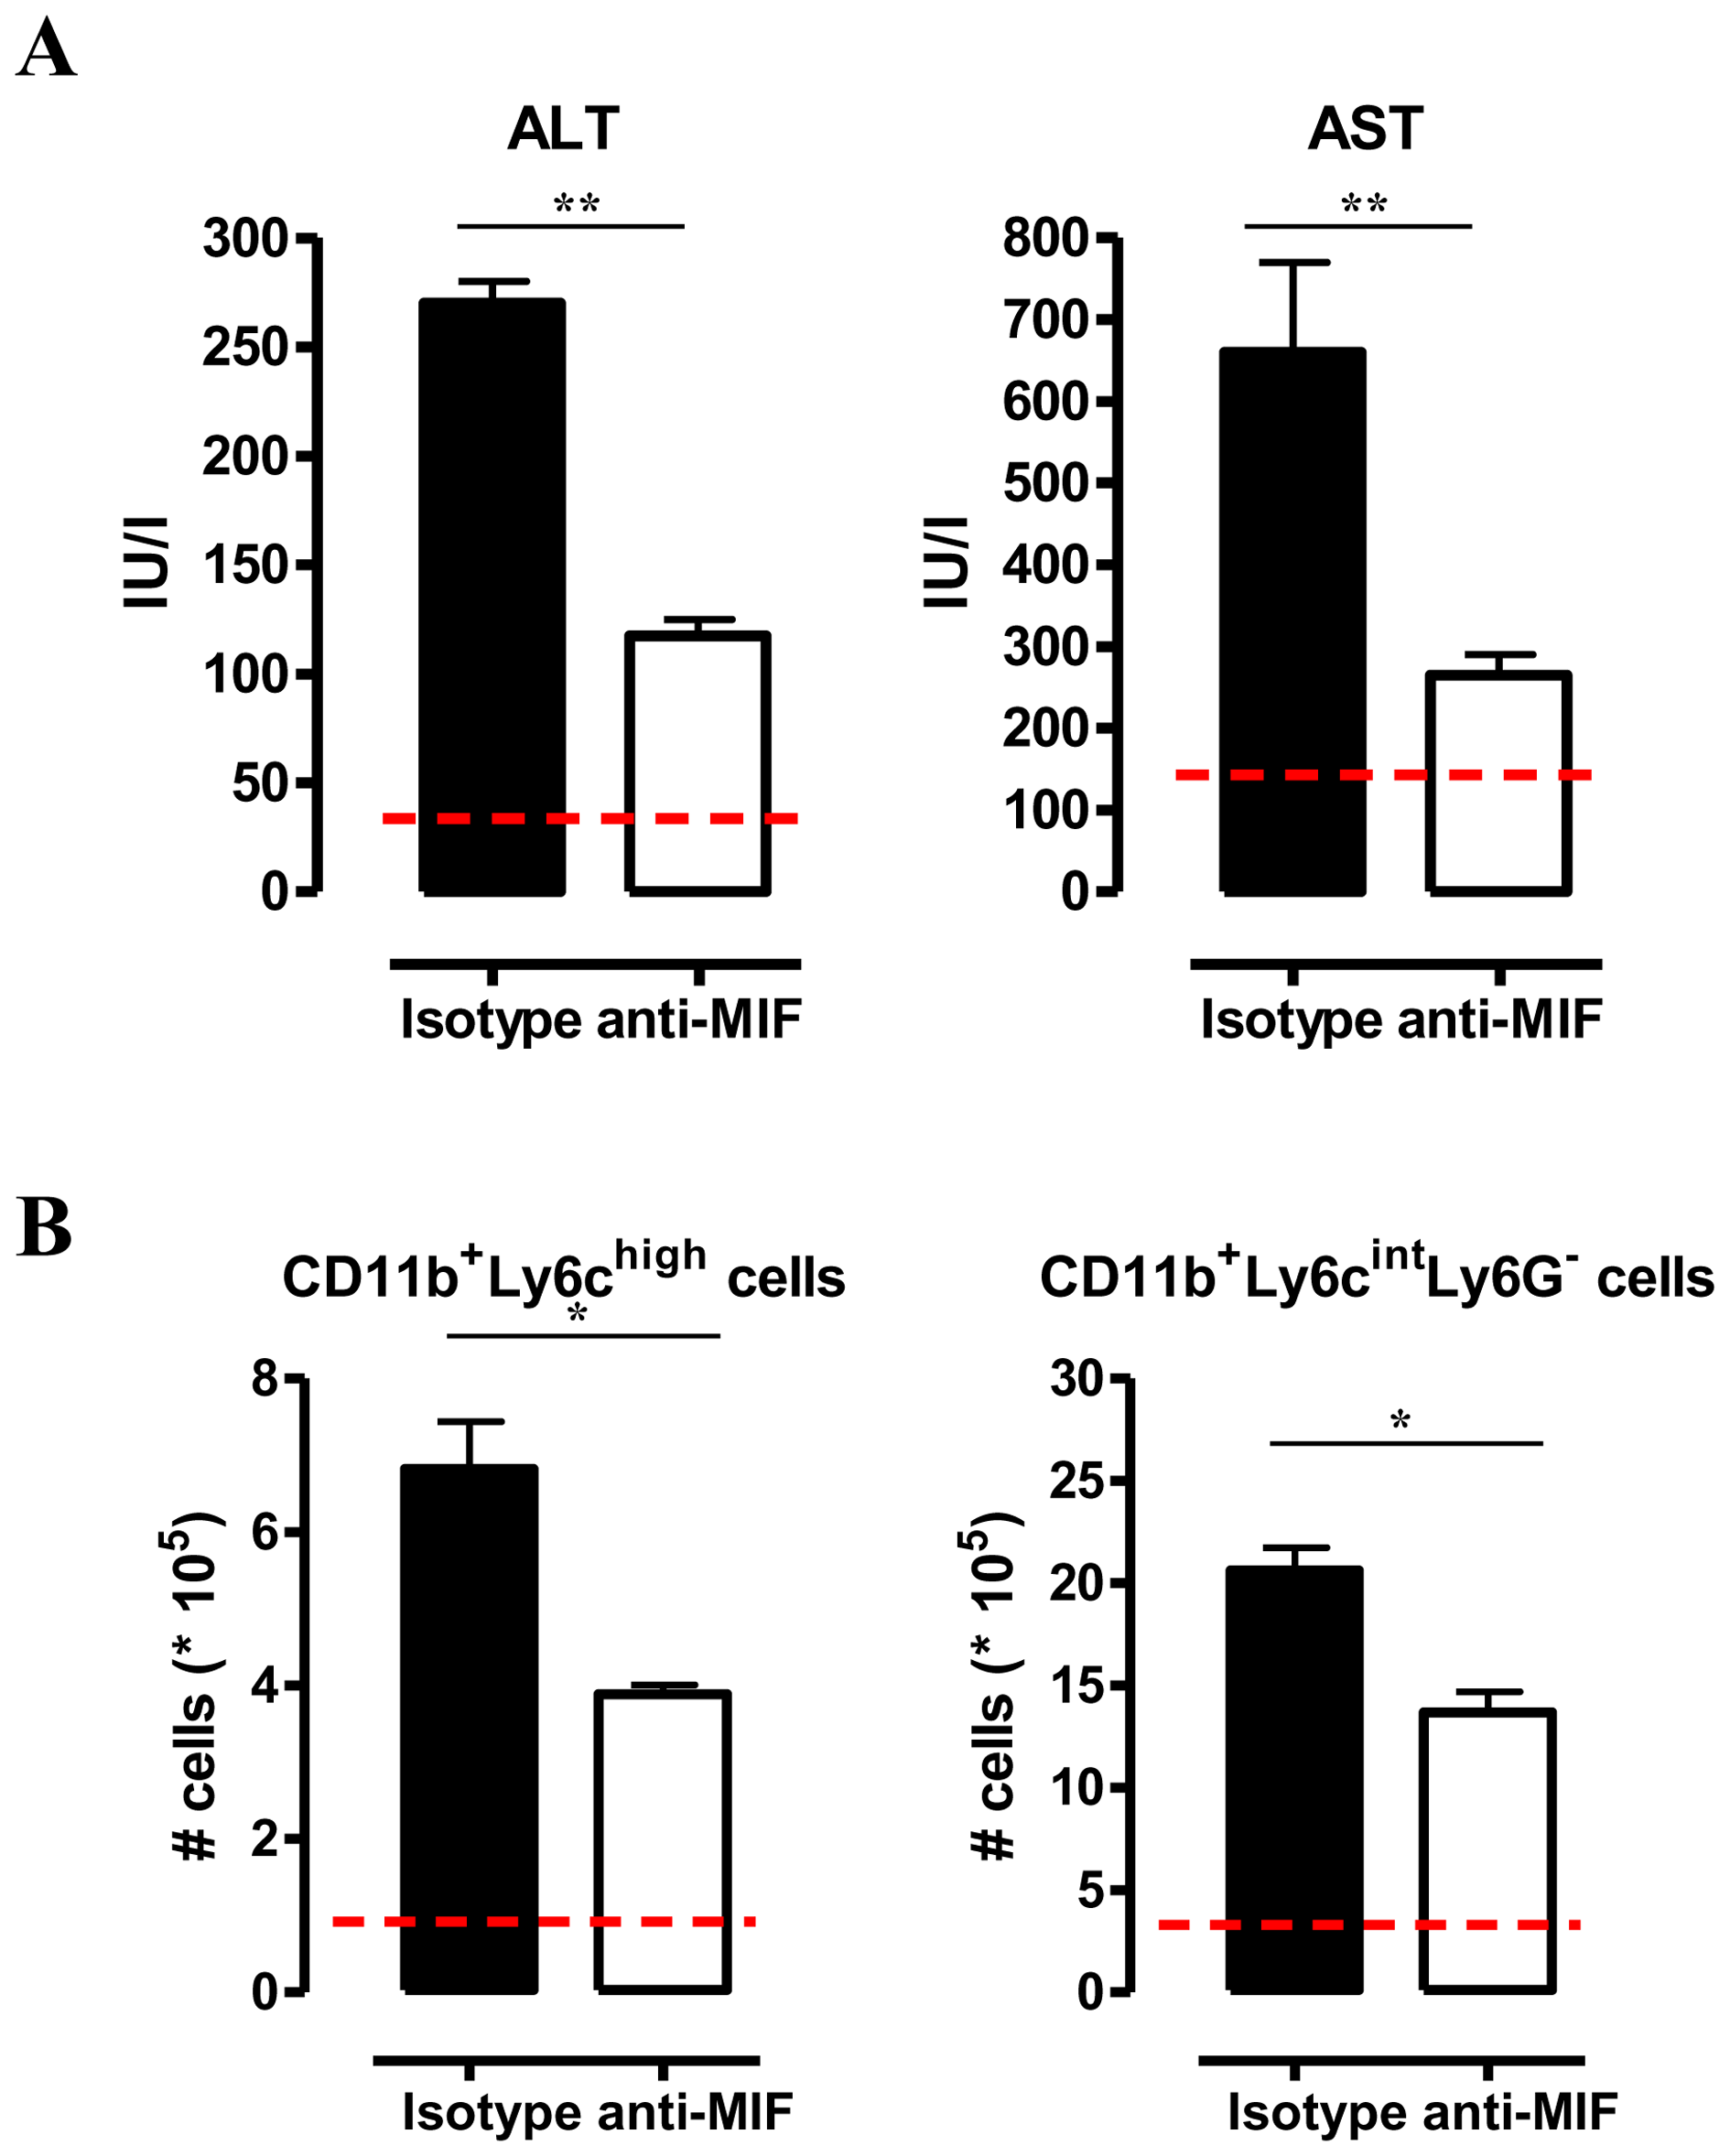 Anti-MIF treatment reduces serum ALT/AST levels and affects liver cell composition during <i>T. brucei</i> infection.